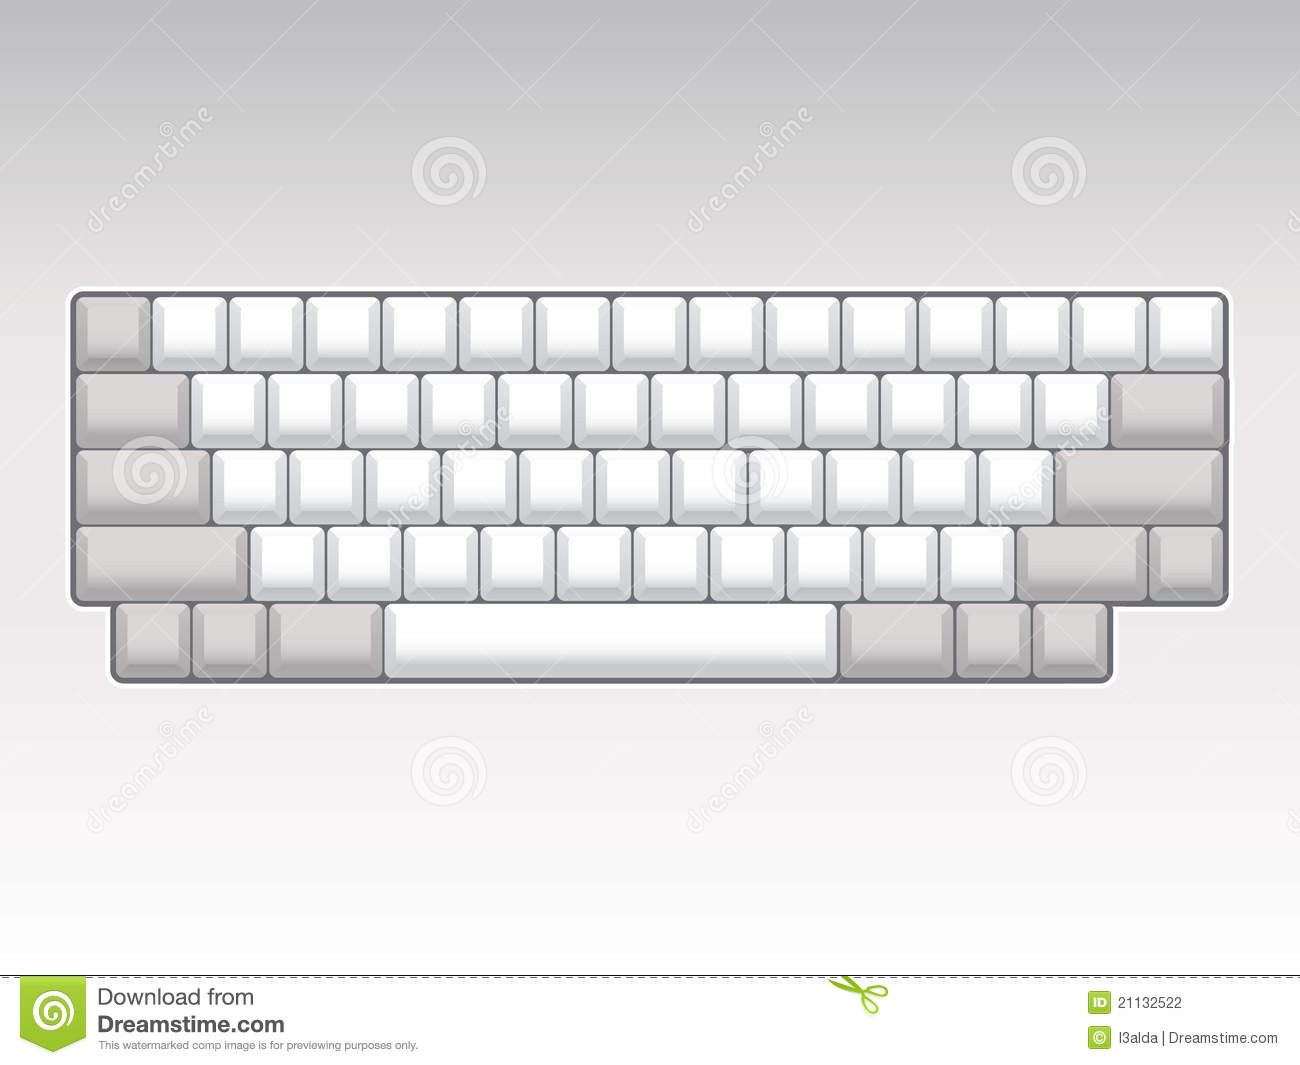 Free Printable Computer Keyboarding Worksheets Blank Keyboard Layout Stock Illustration Illustration Of